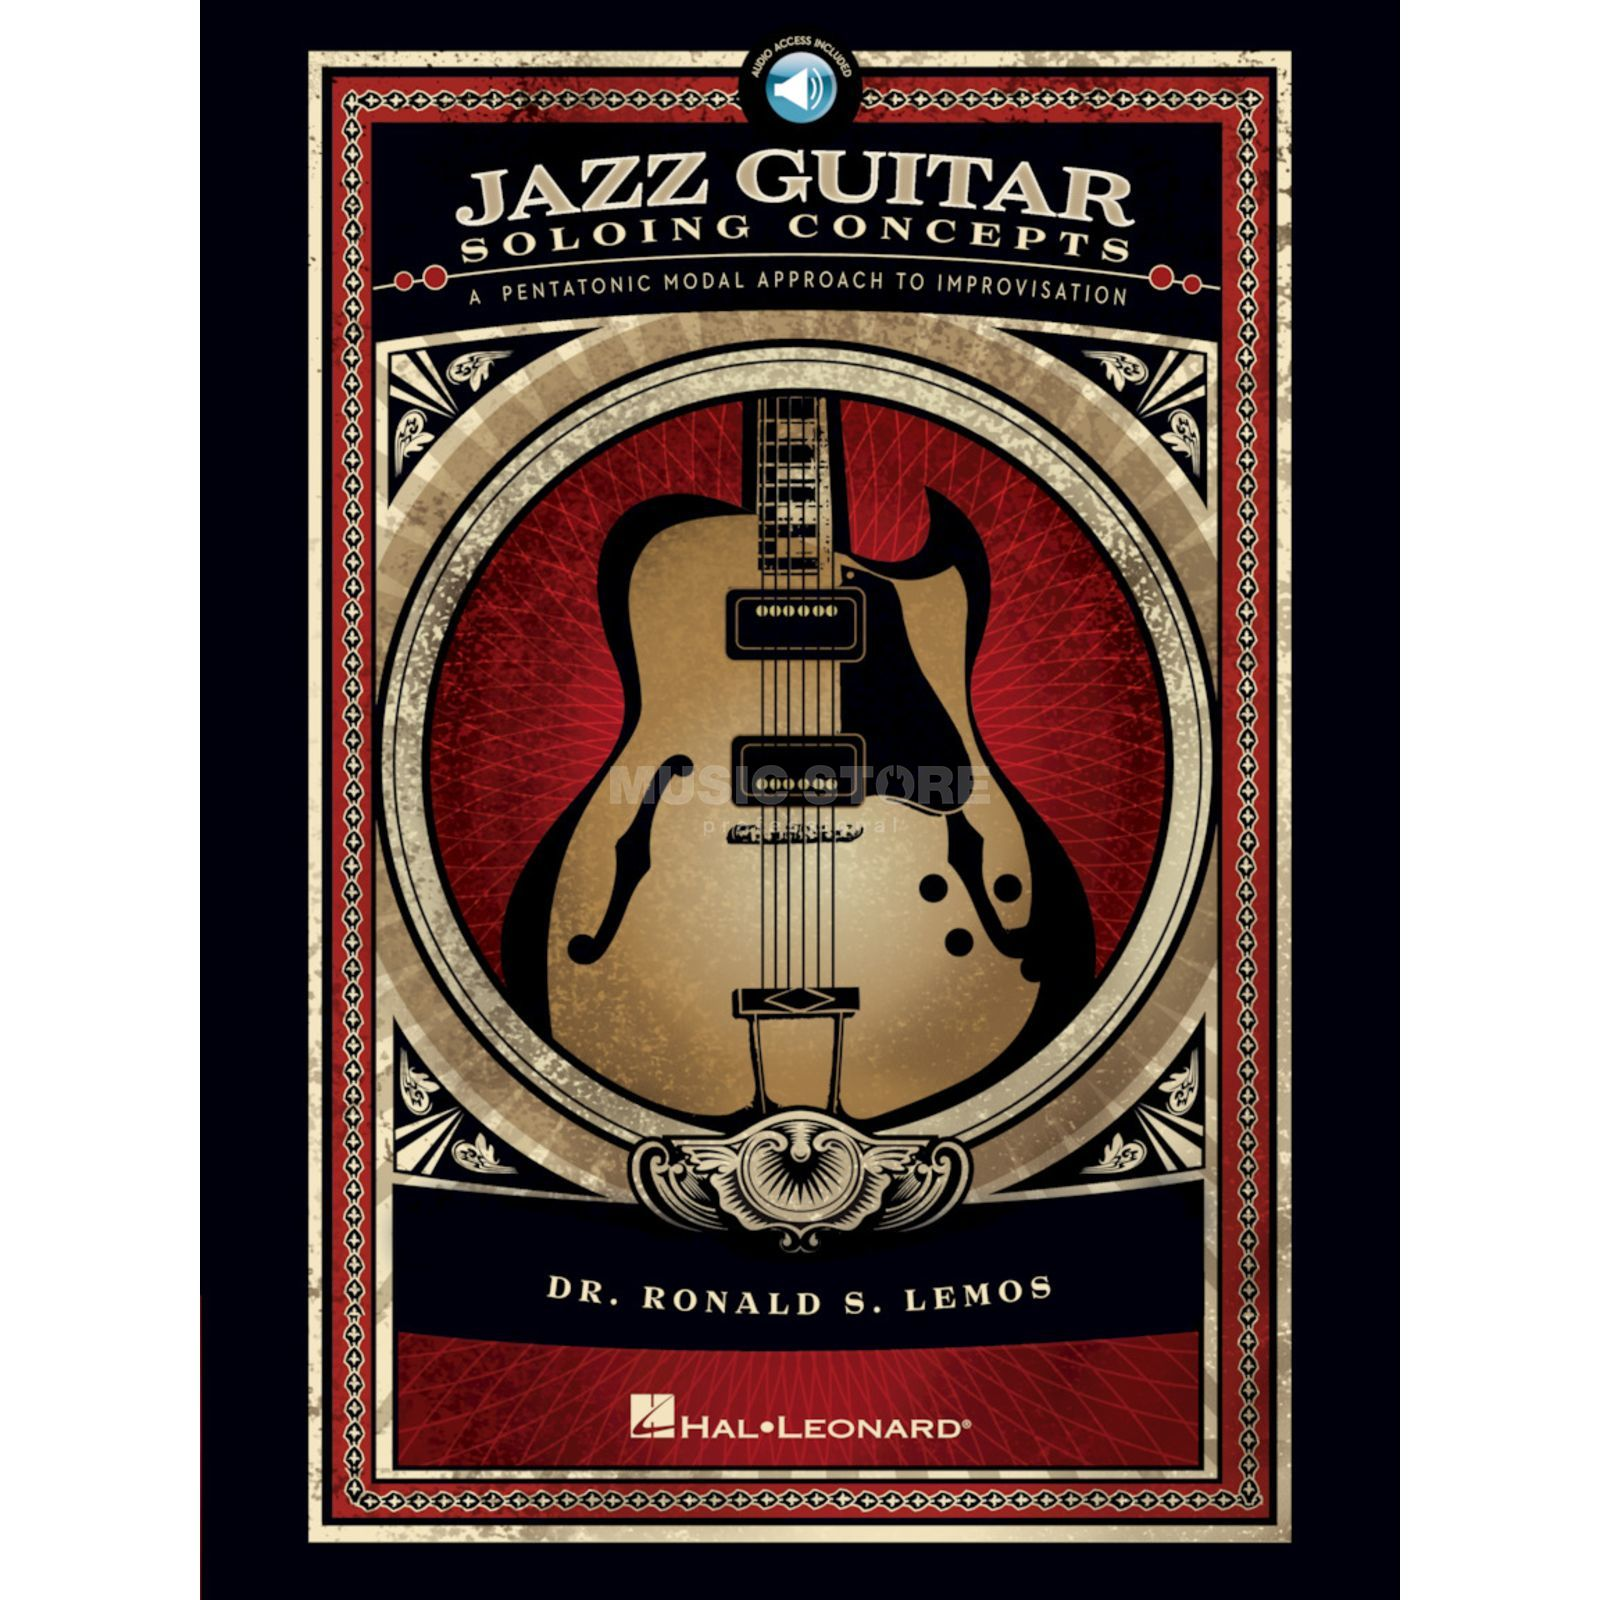 Hal Leonard Jazz Guitar Soloing Concepts Book and CD Produktbillede